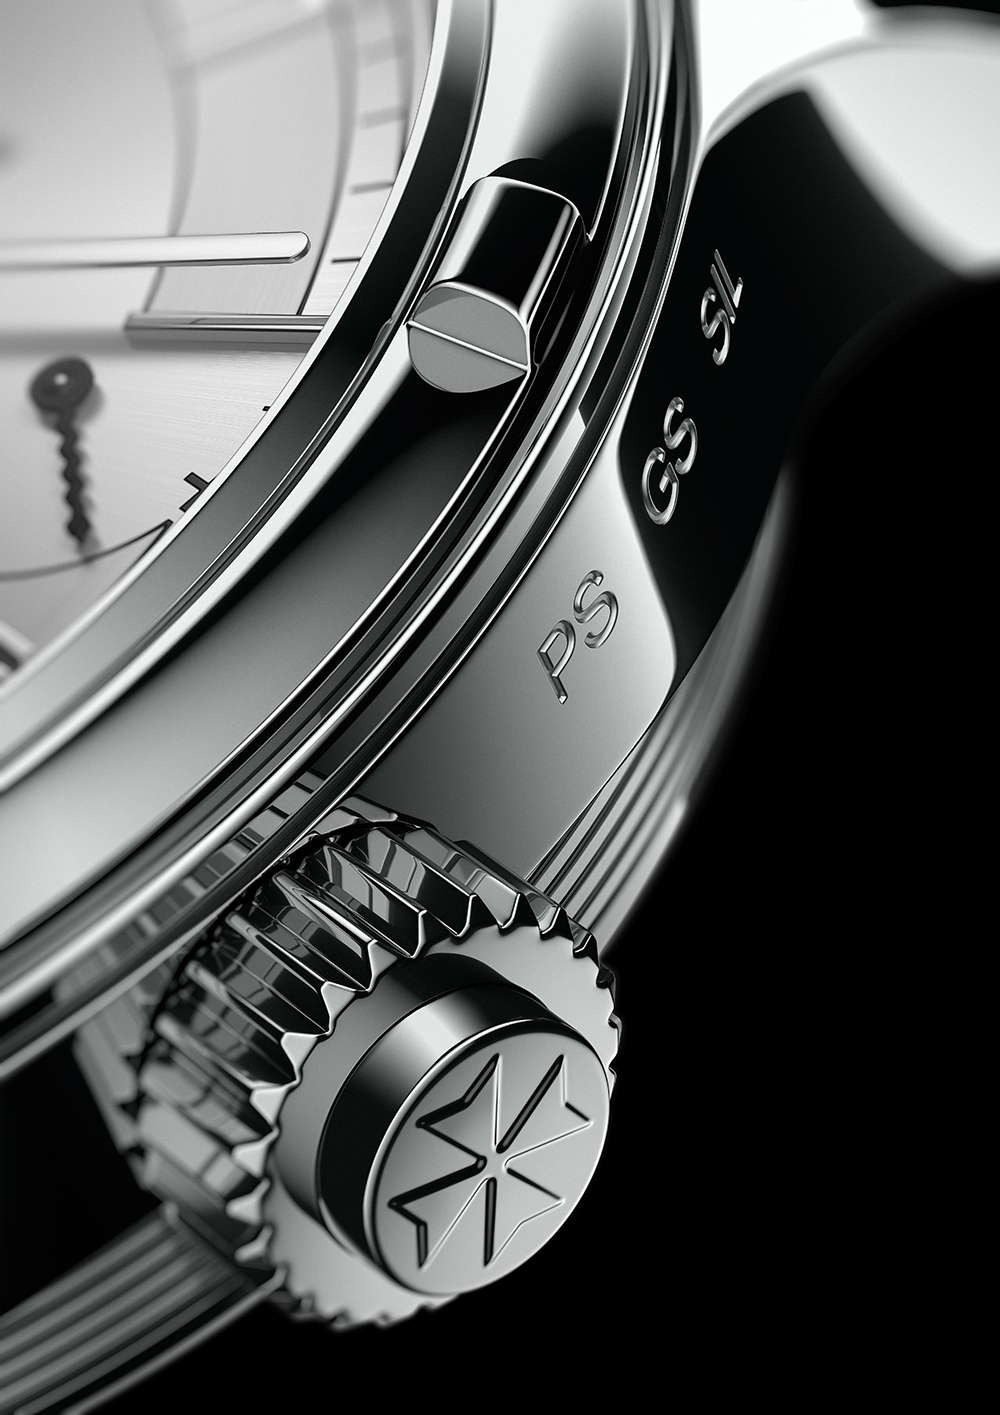 Vacheron Constantin Les Cabinotiers Symphonia Grande Sonnerie crown and pusher detail